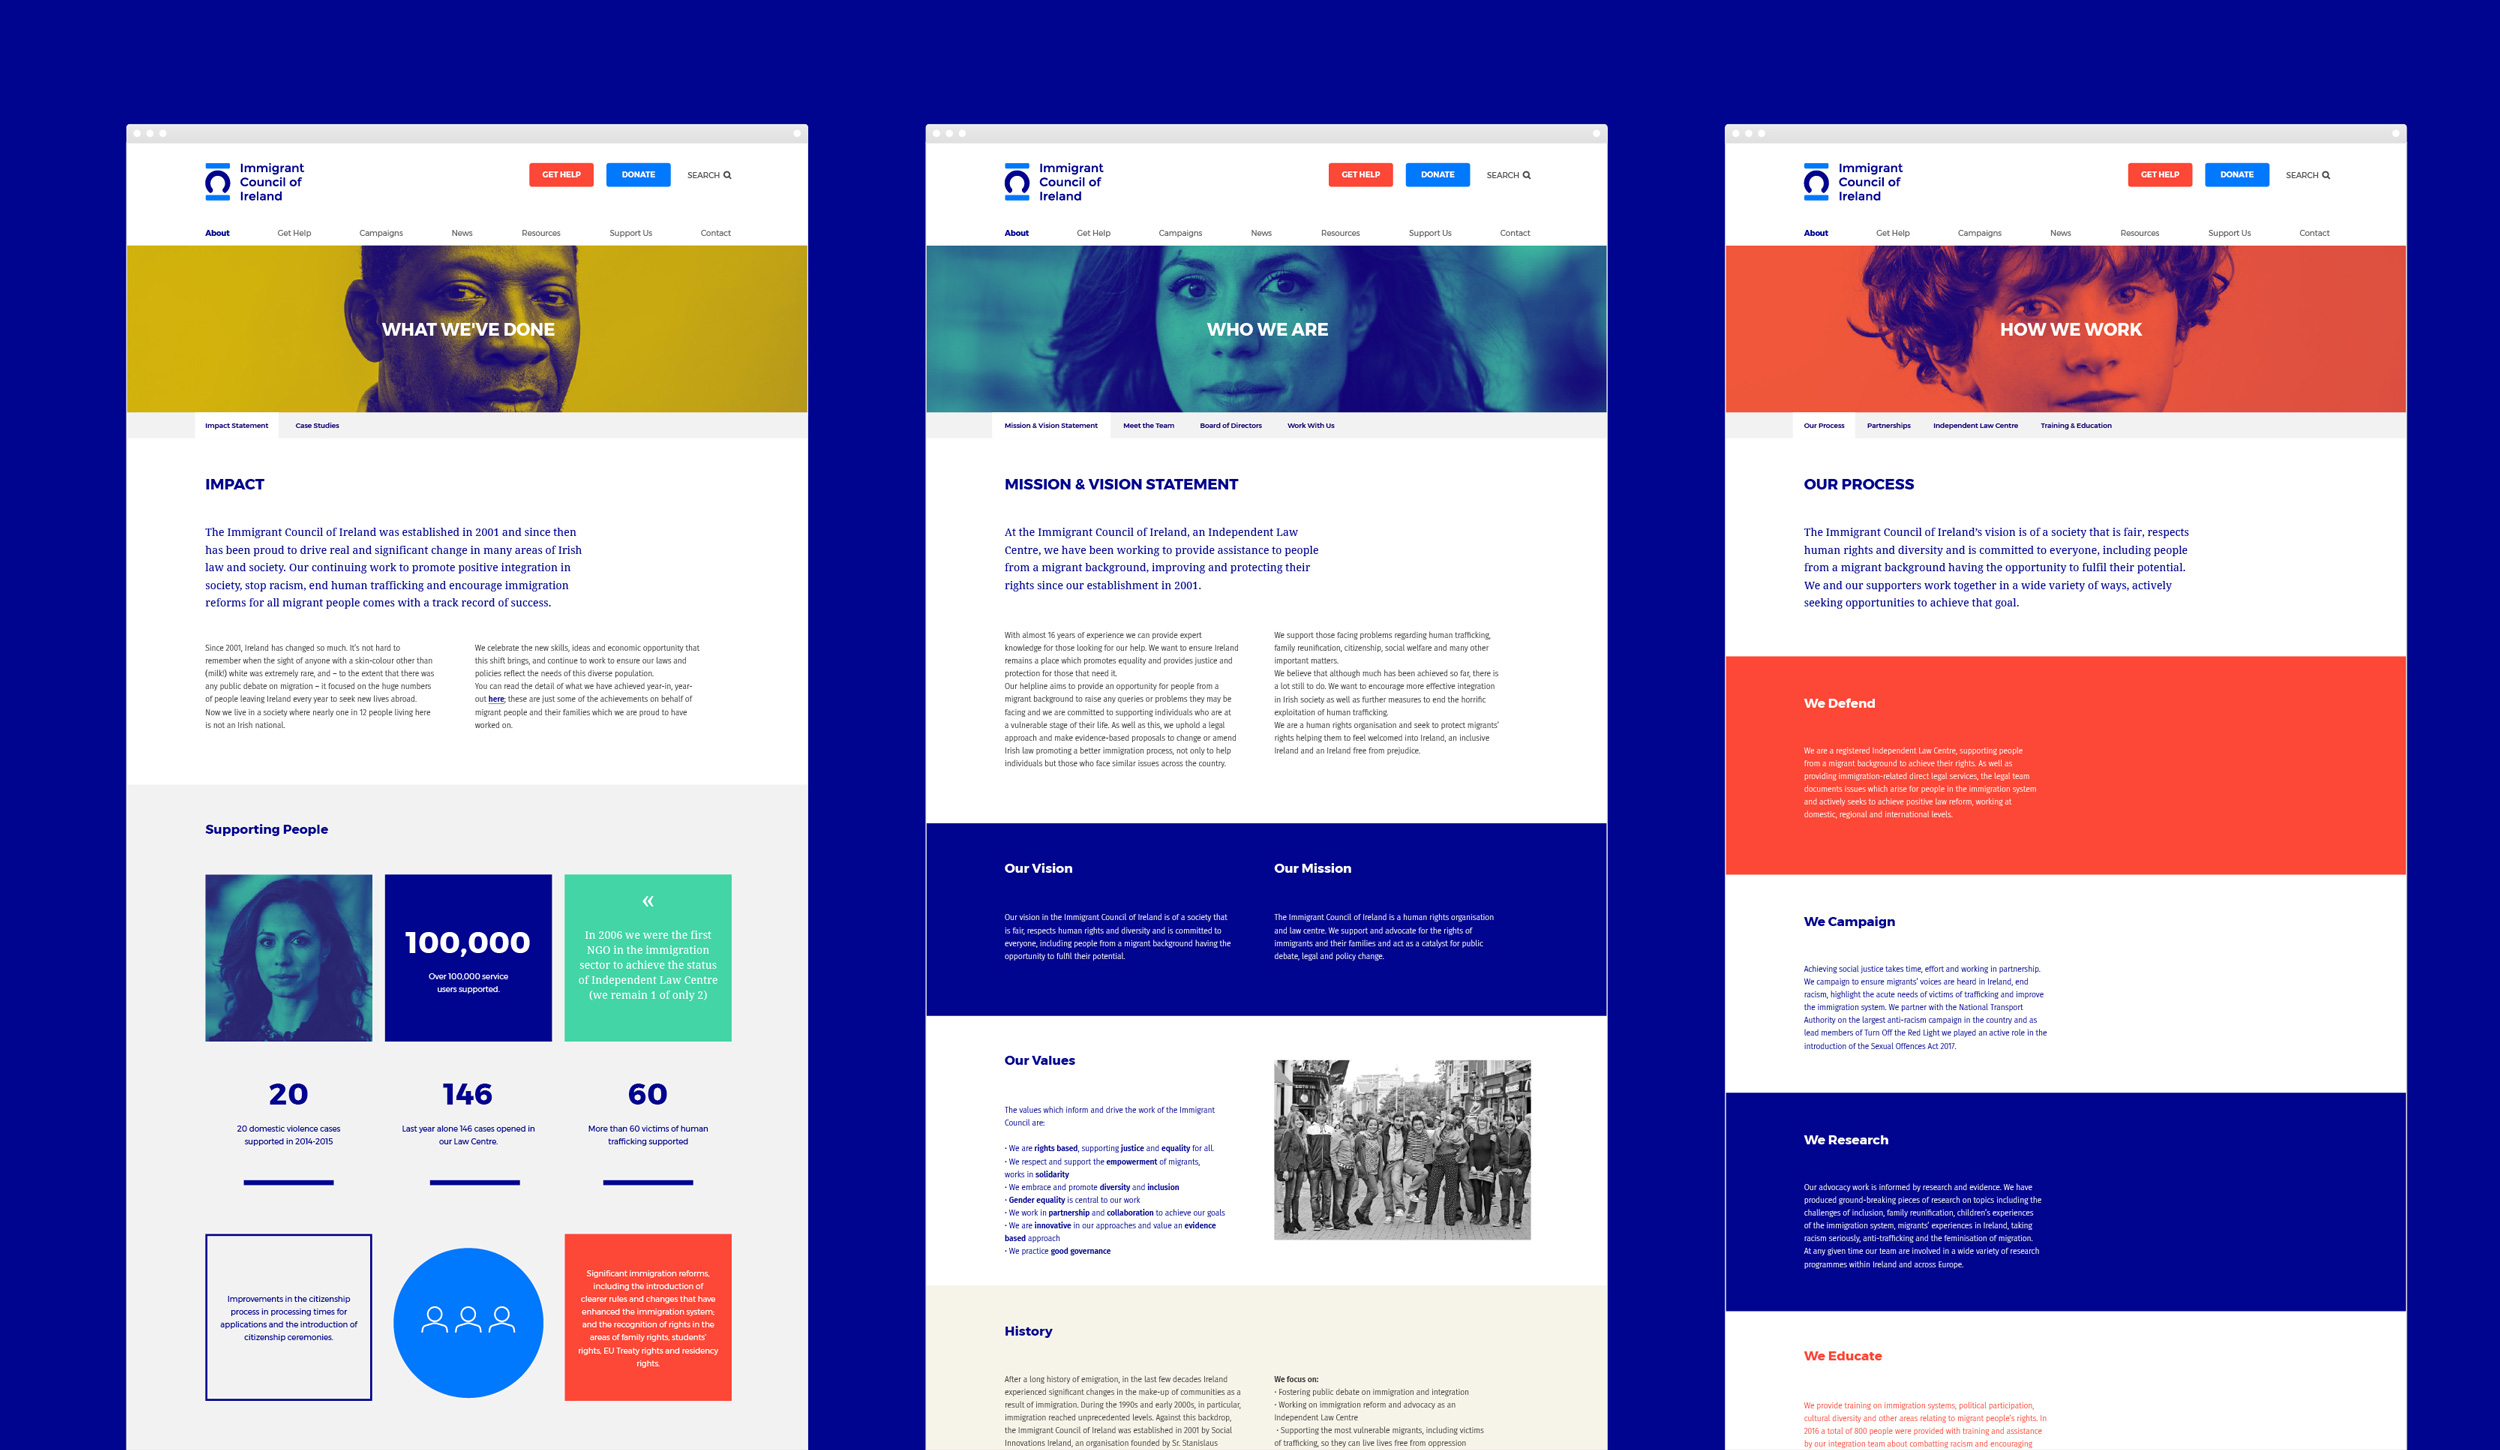 Immigrant Council of Ireland website design and development, some sample pages